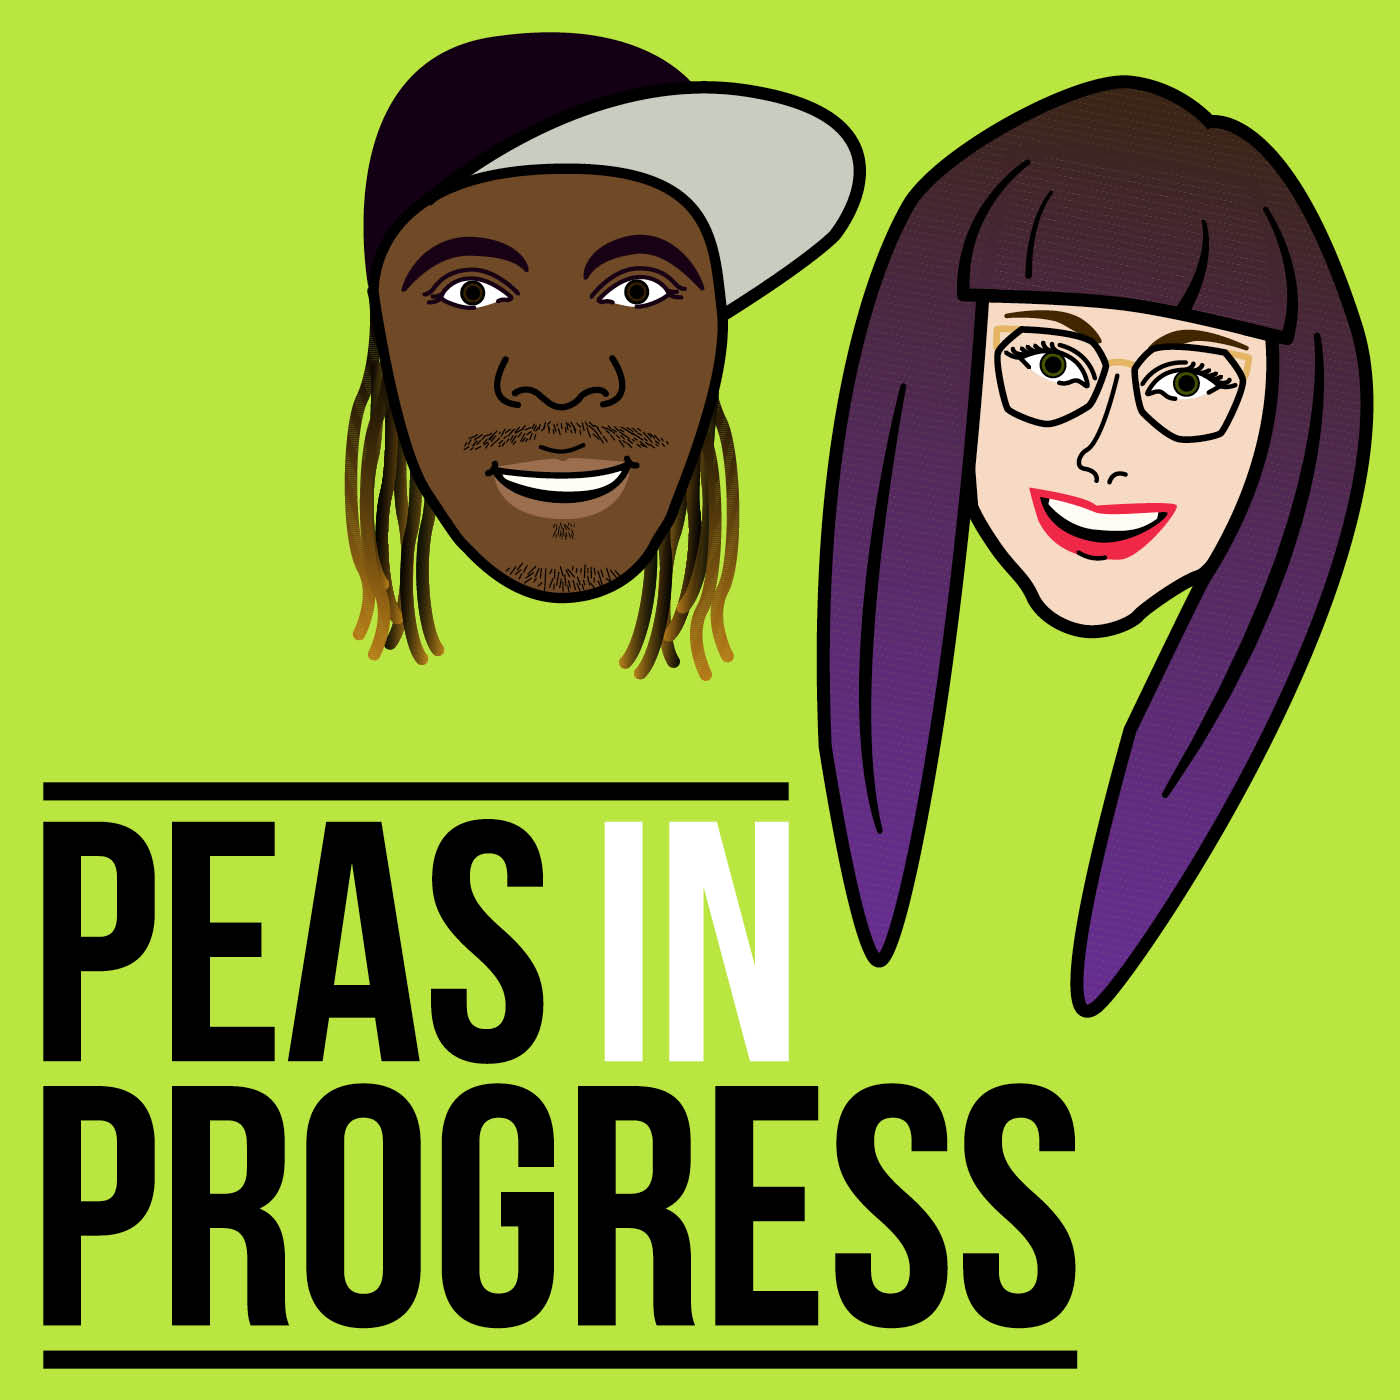 That-Vegan-Wife-Peas-in-Progress-The-Black-&-White-Experience-Part-2-Facing-Racism.jpeg